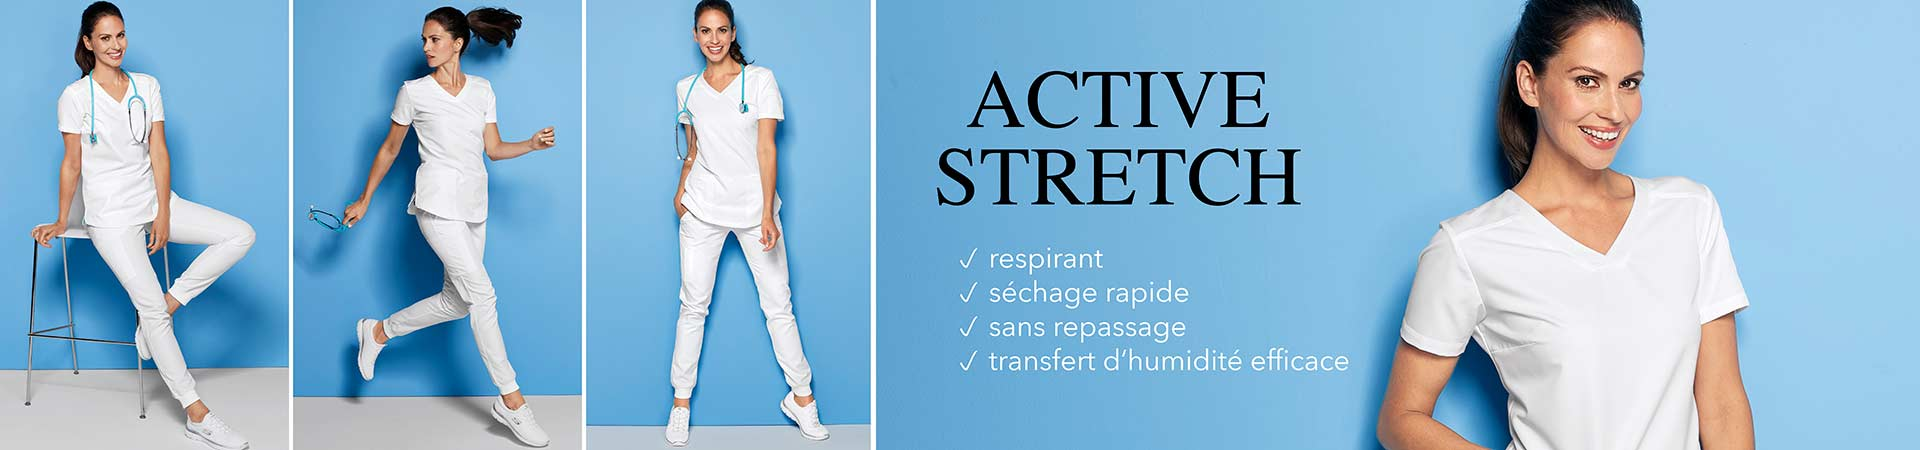 Active Stretch